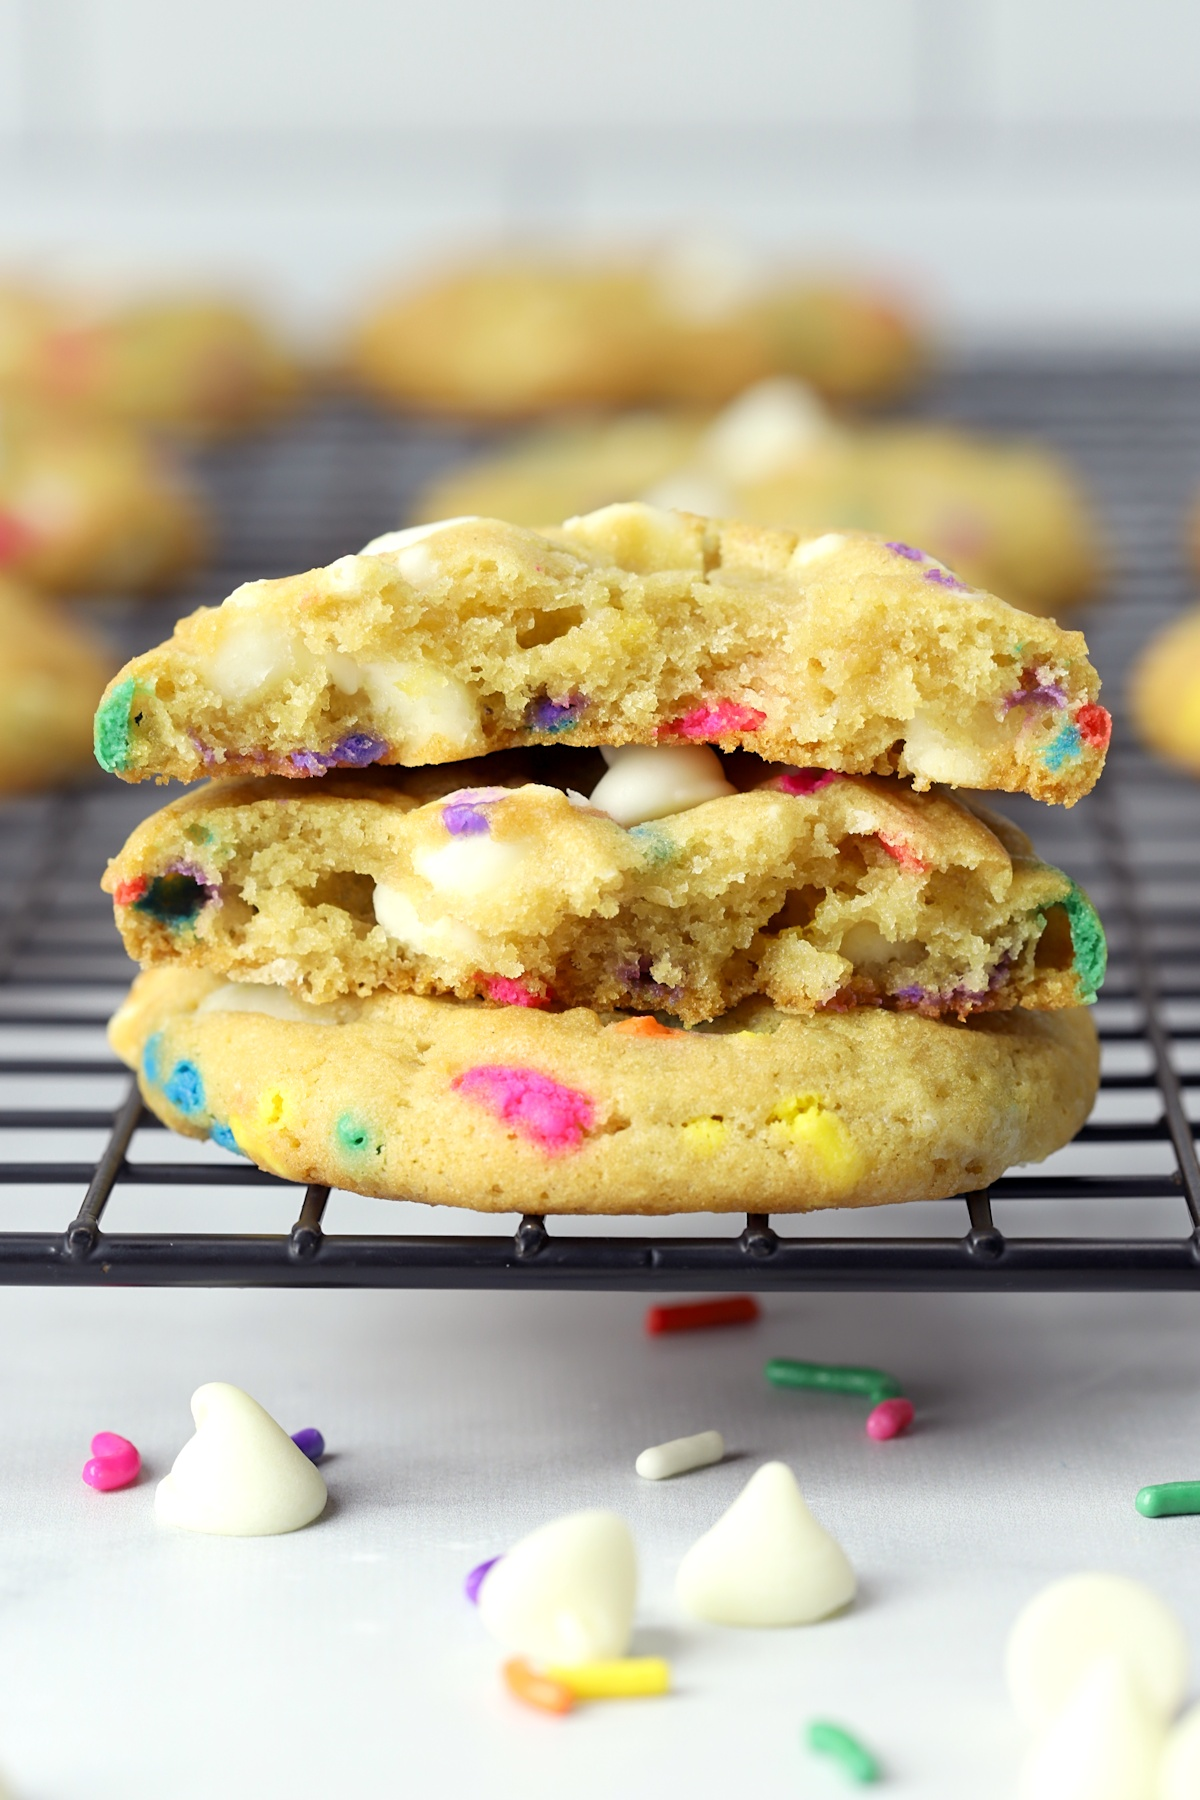 Cookie broken in half to show soft center with white chocolate chips and sprinkles.